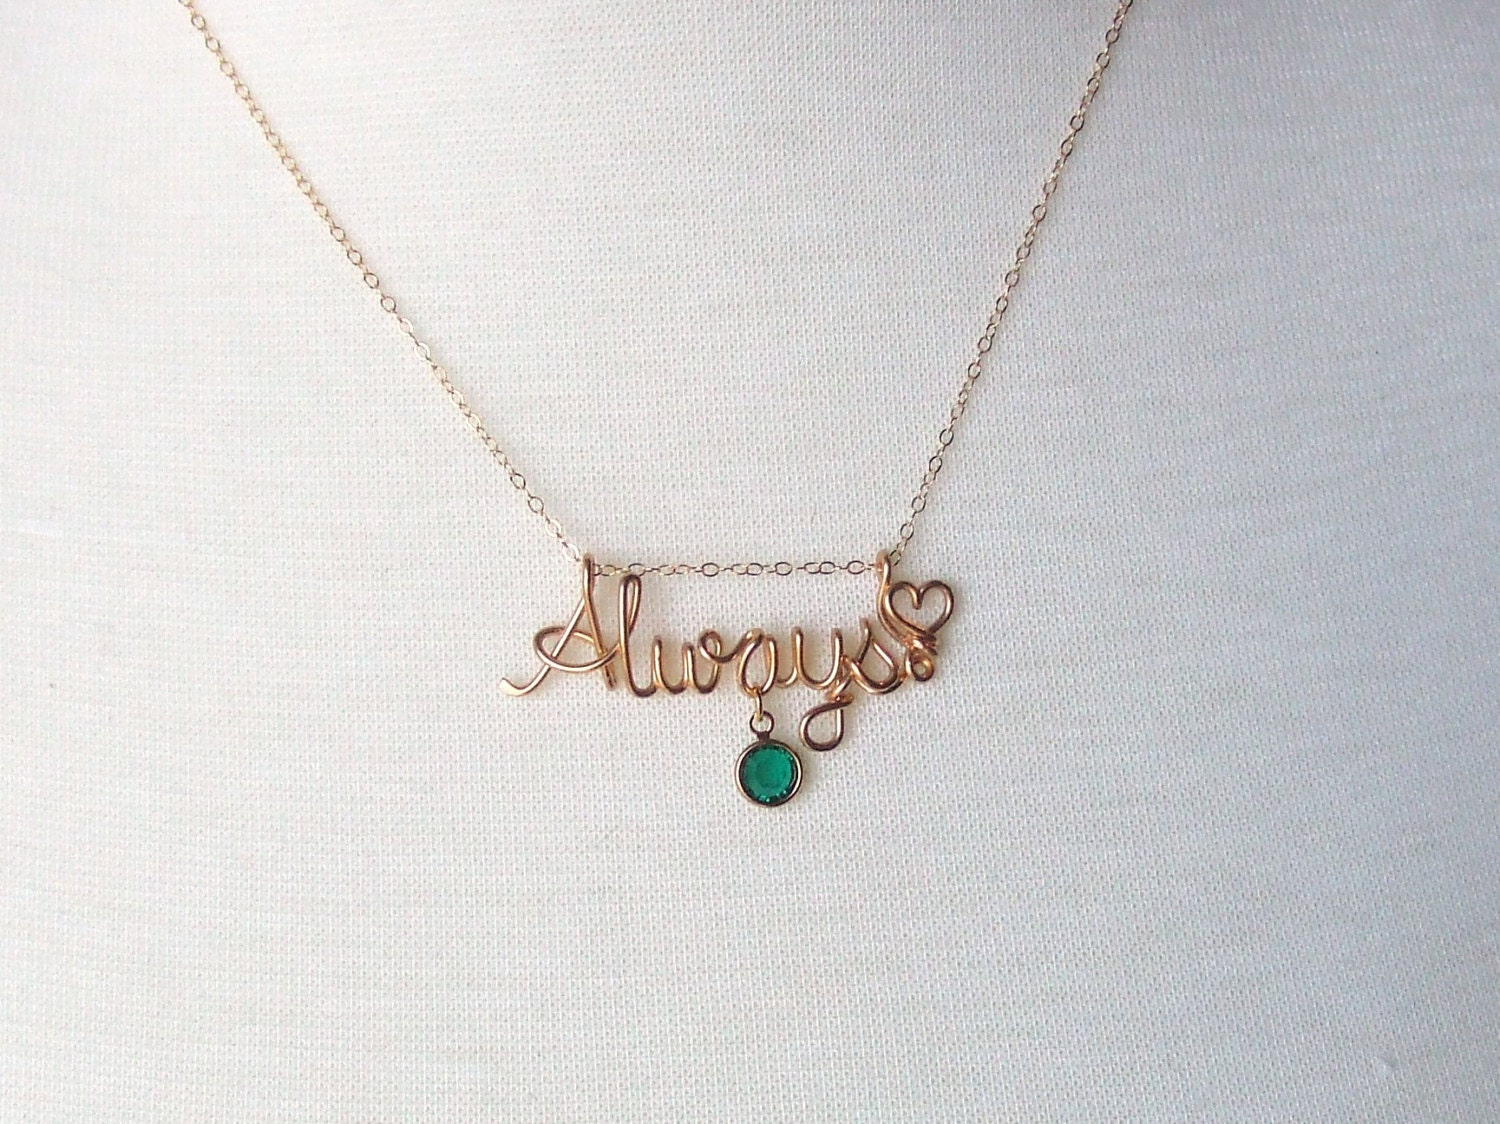 custom name word necklace 14k gold filled by